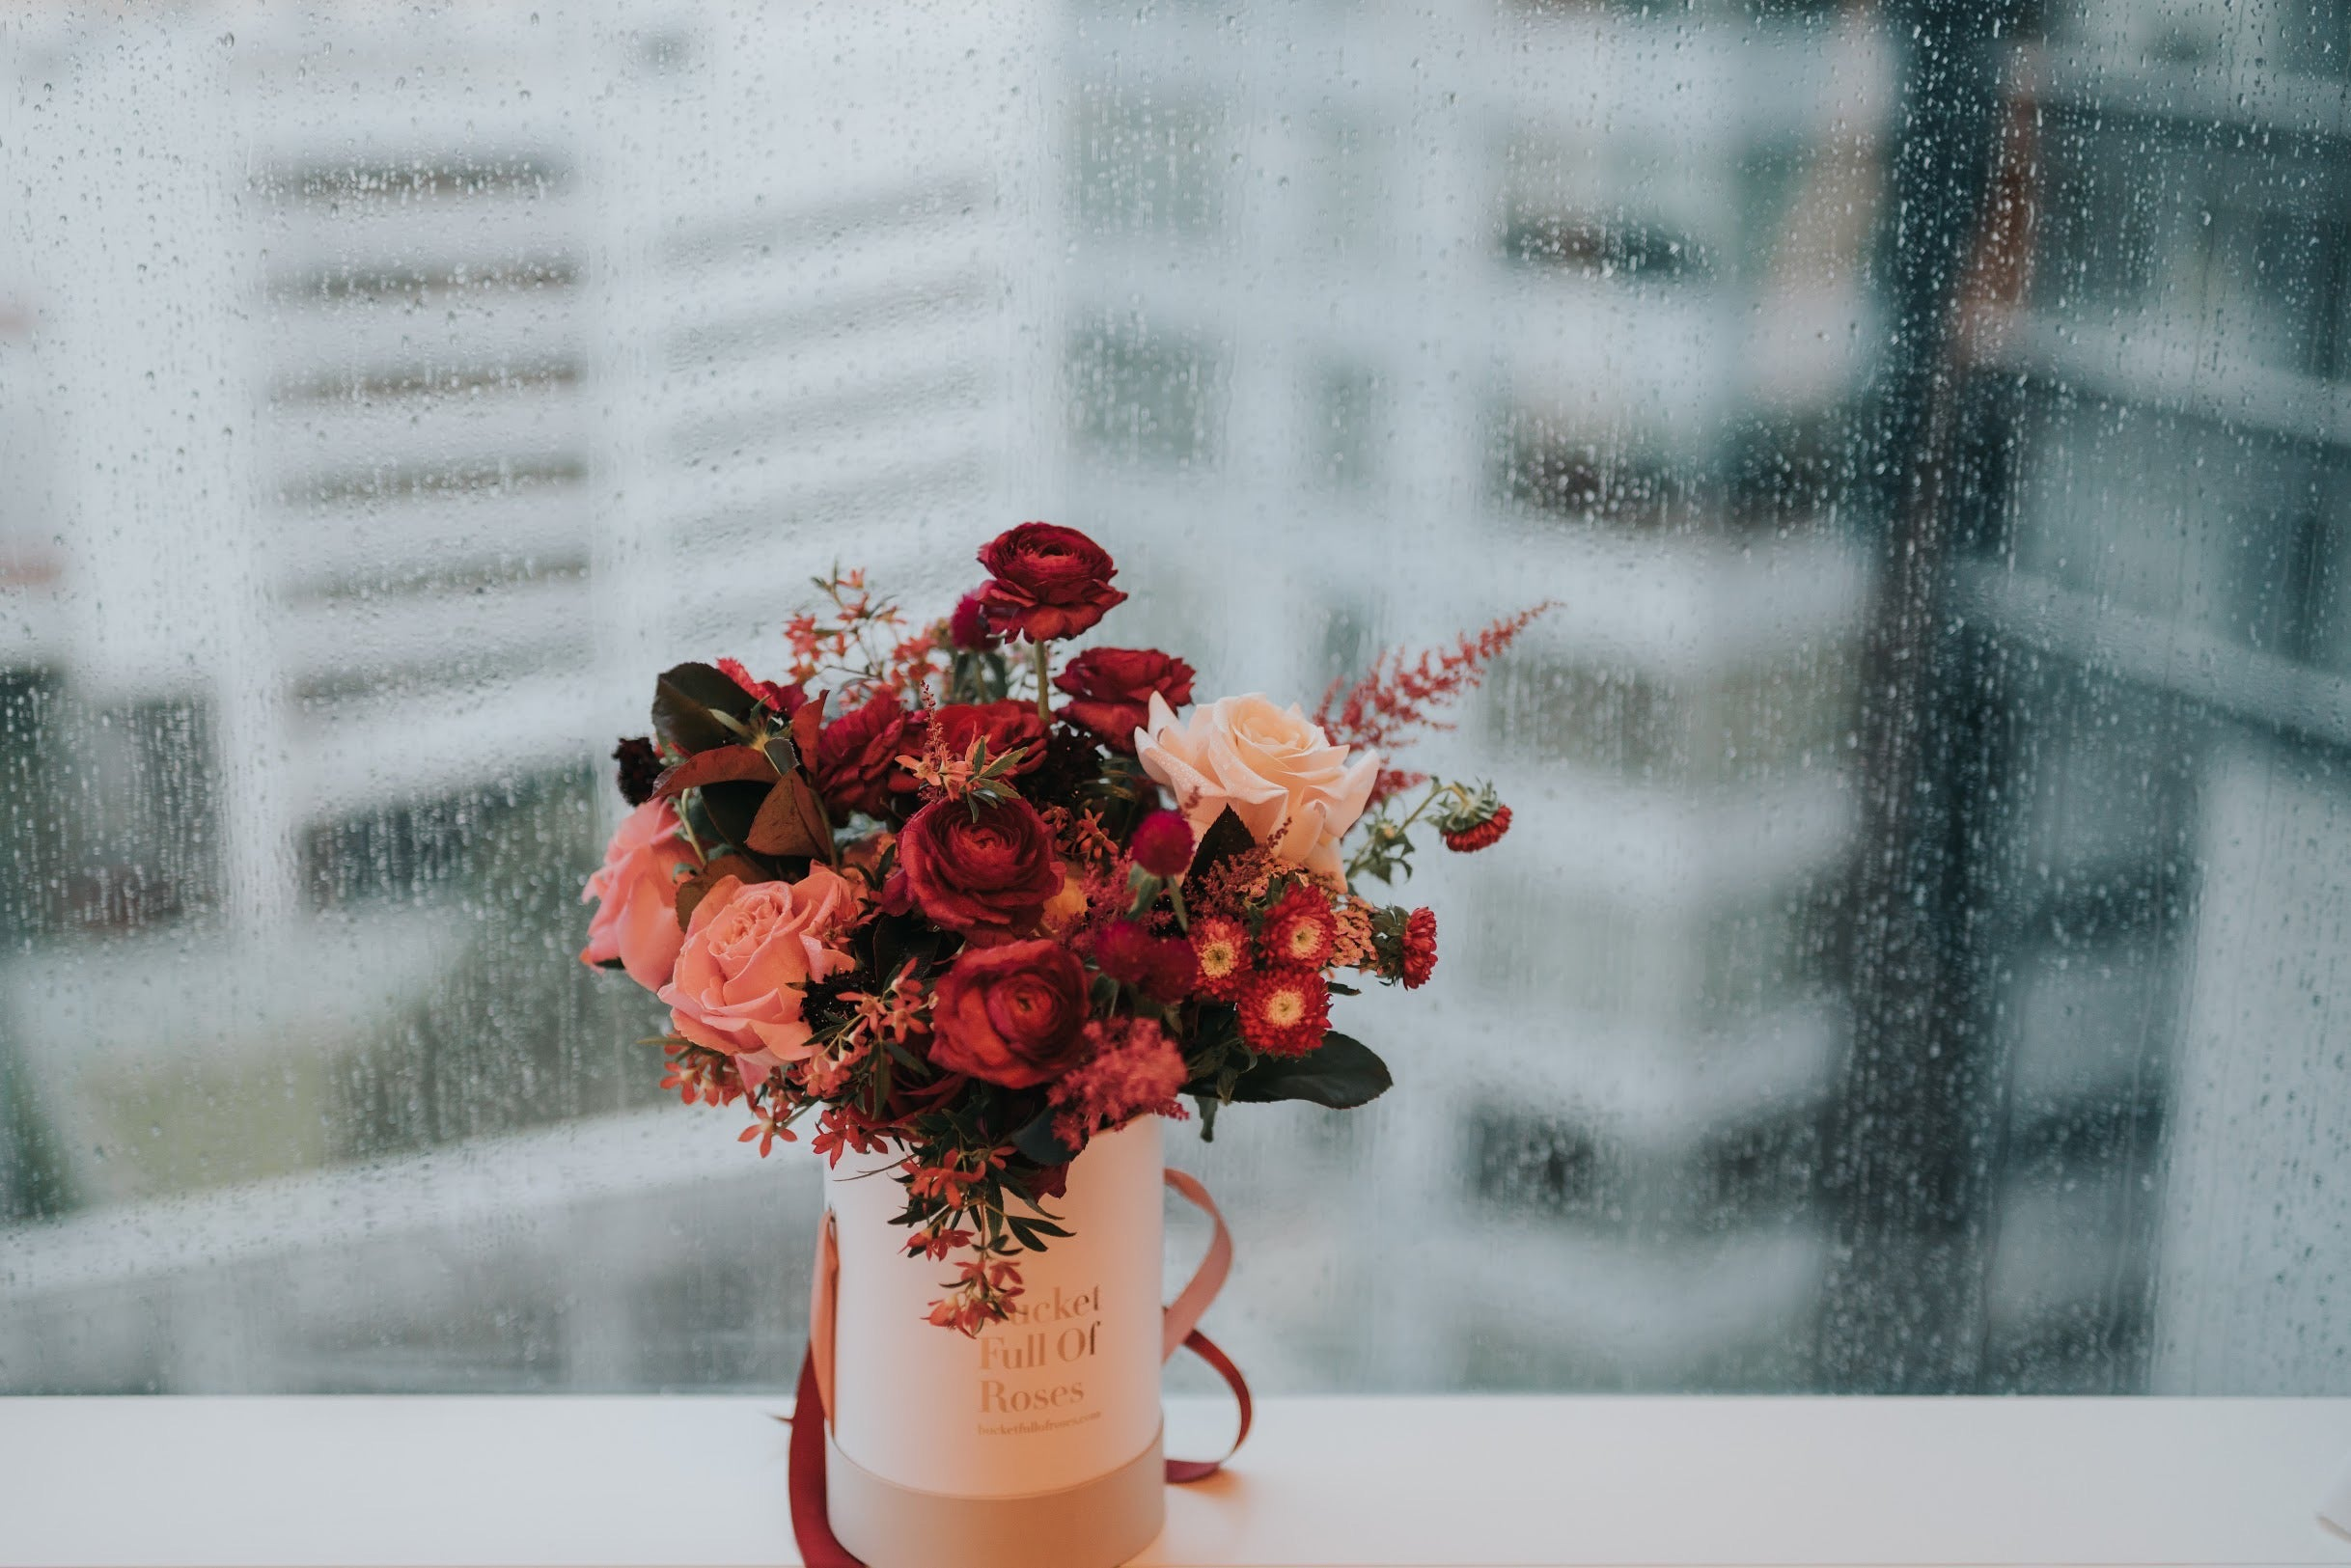 Rainy wedding at St Regis Hotel background with close up shot of bridal bouquet in BFOR packaging to ensure wedding bouquet freshness